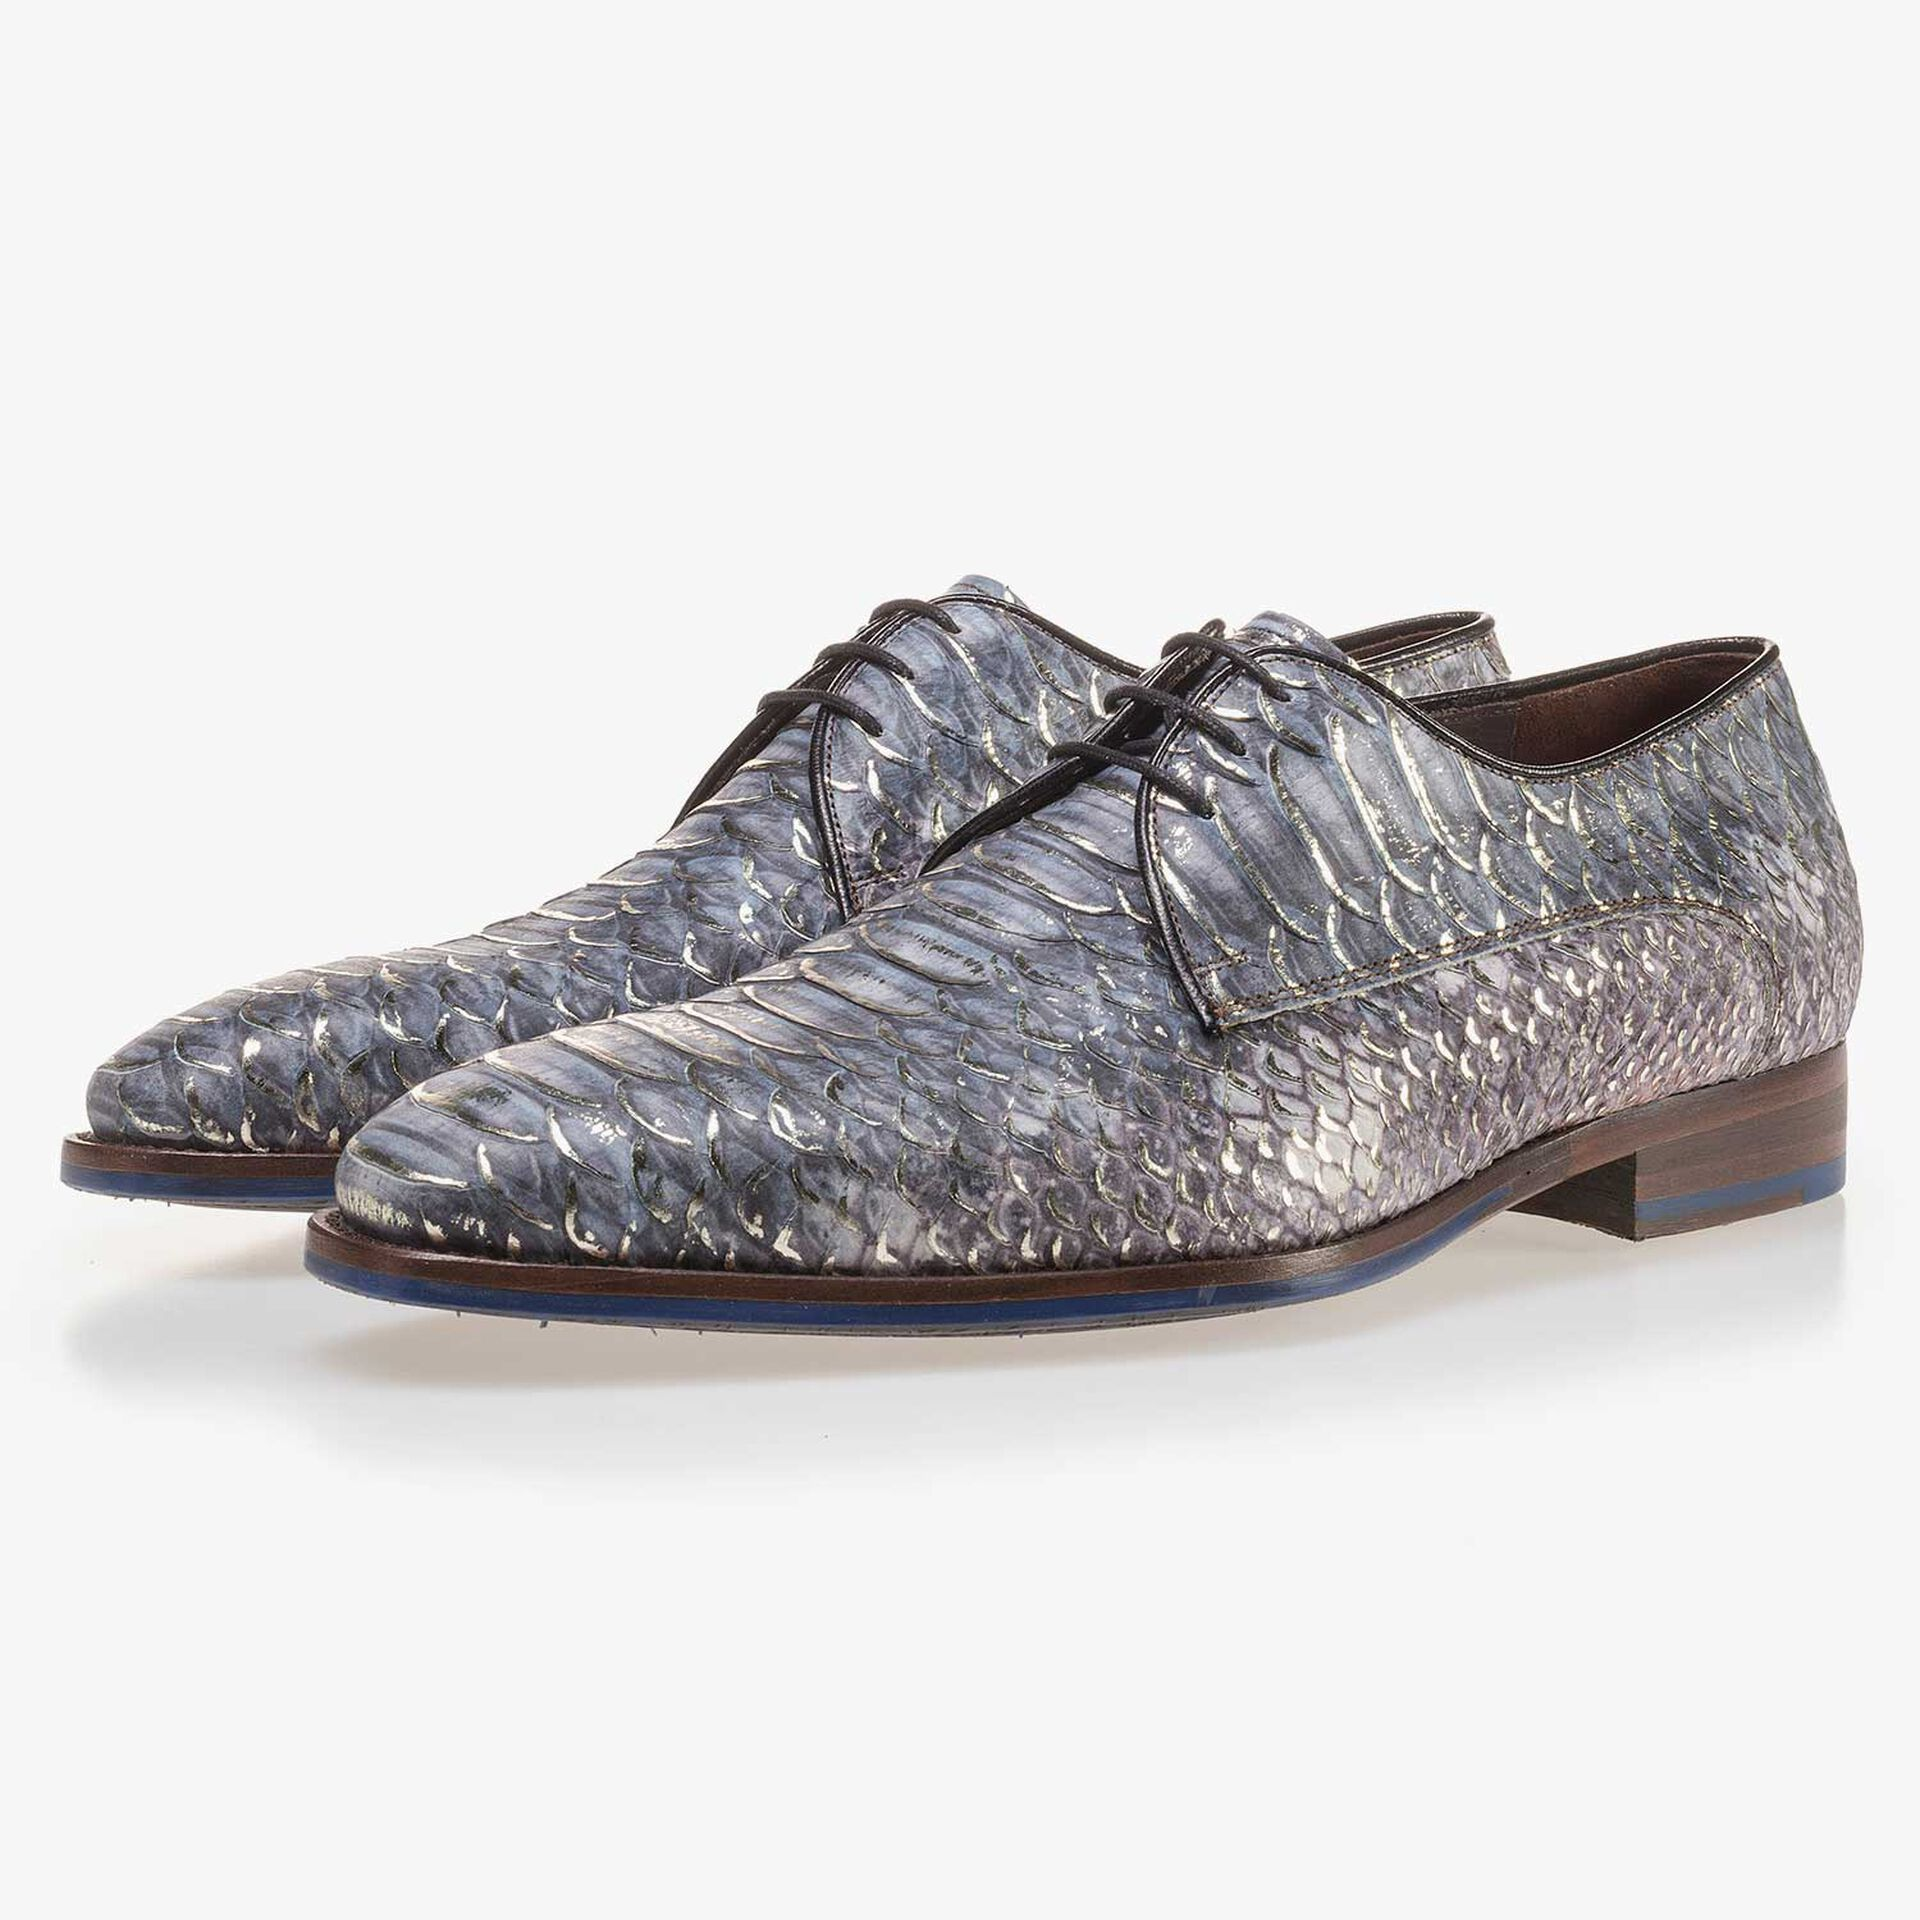 Premium blue leather lace shoe with a snake print